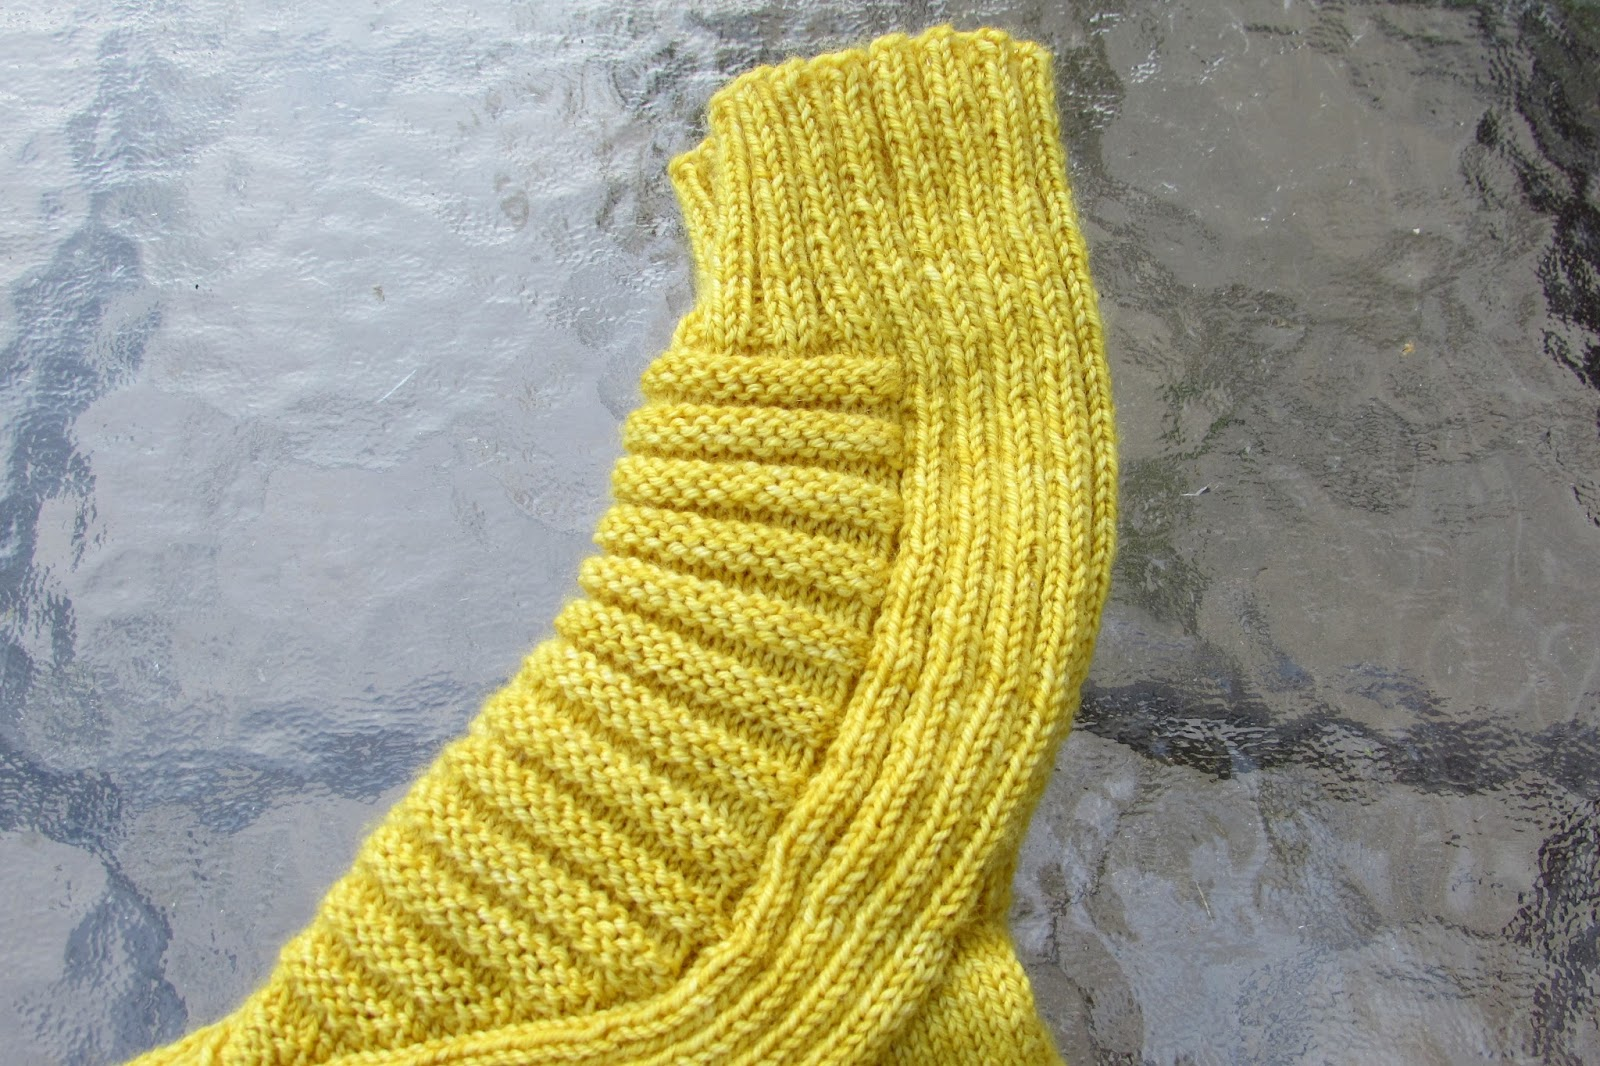 Dirty Water DyeWorks: The Banana Socks